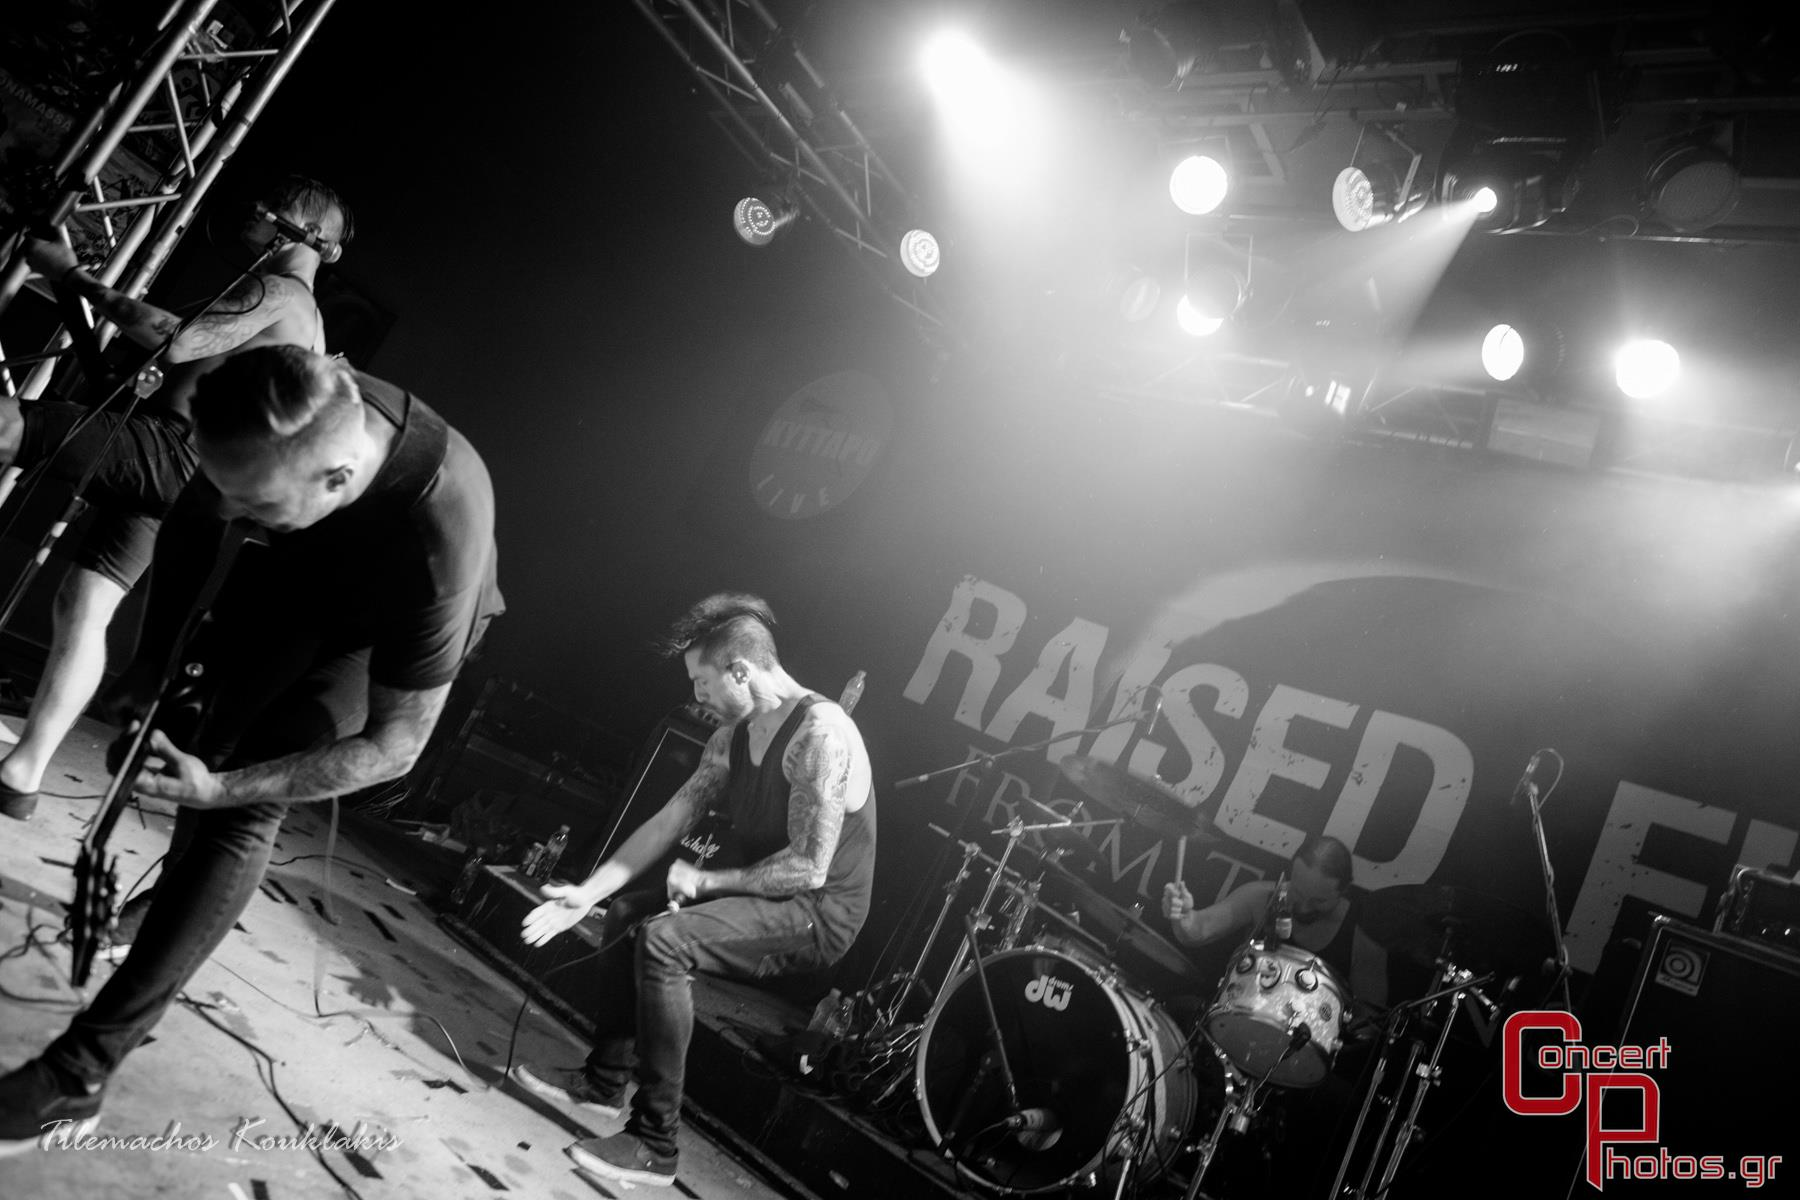 Raised Fist - Endsight - The Locals-Raised Fist photographer:  - 01_Raised Fist_05